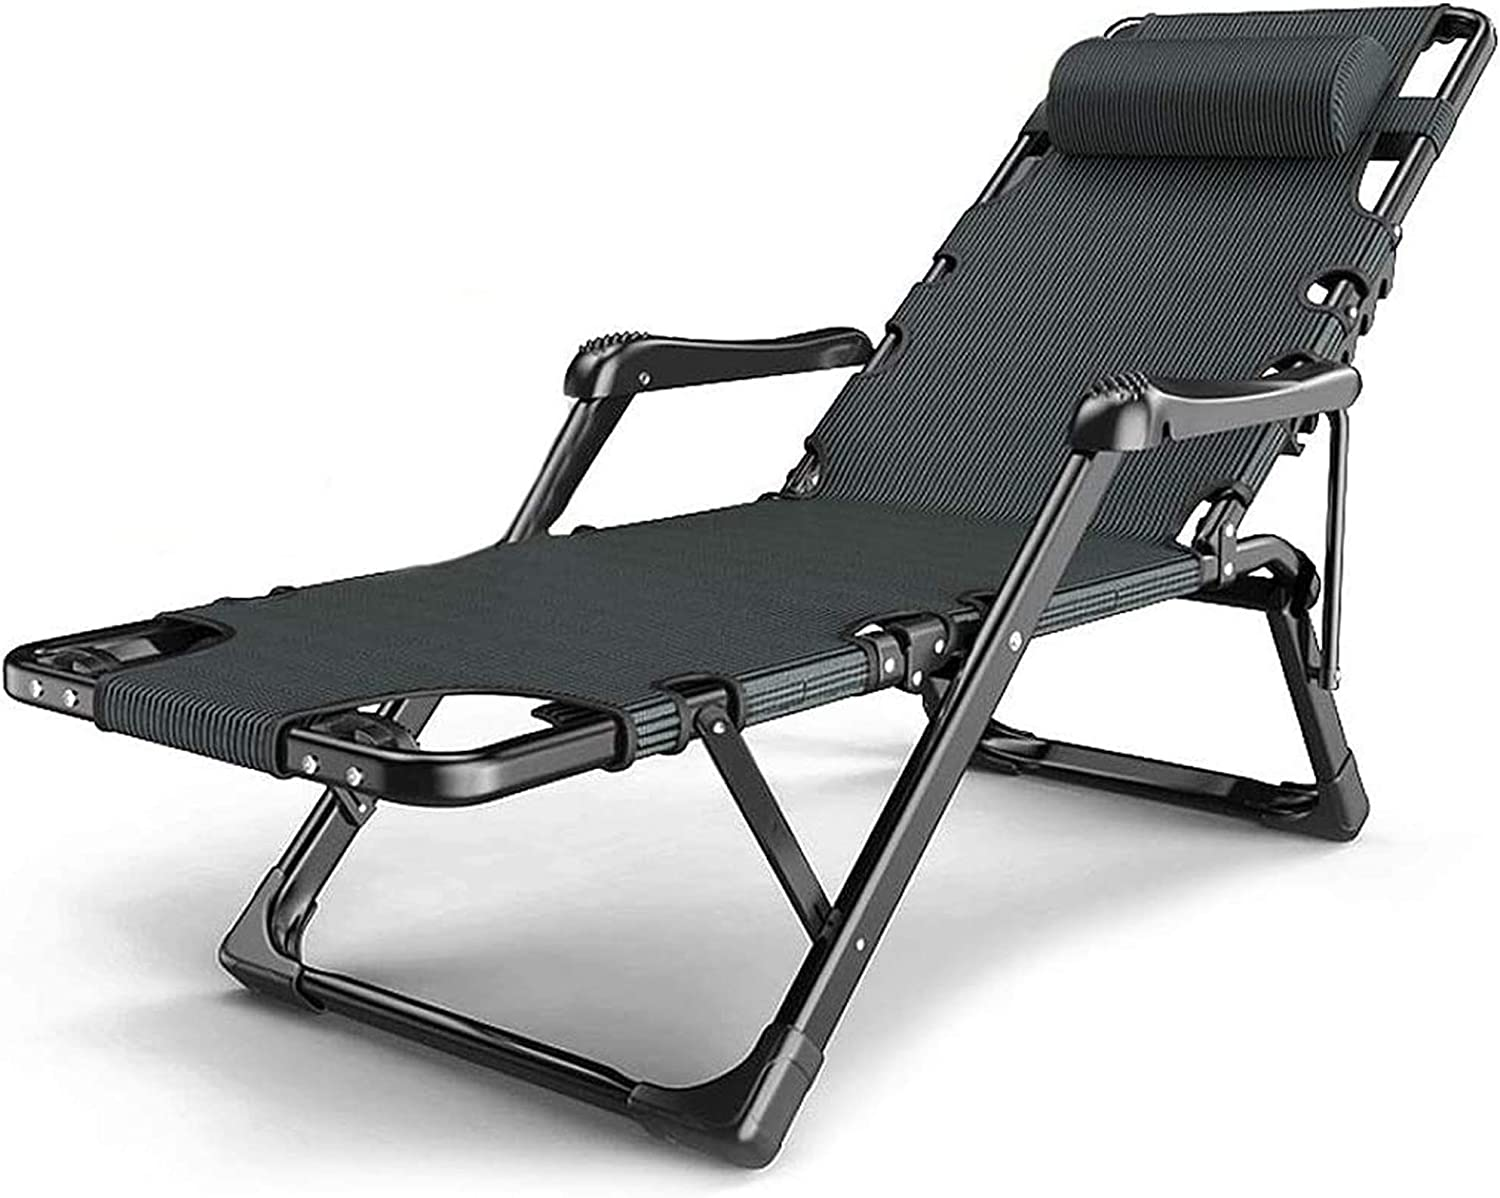 Outdoor Folding Max 59% OFF Lounge Chair Sun for Lounger Zero Gravity Over item handling ☆